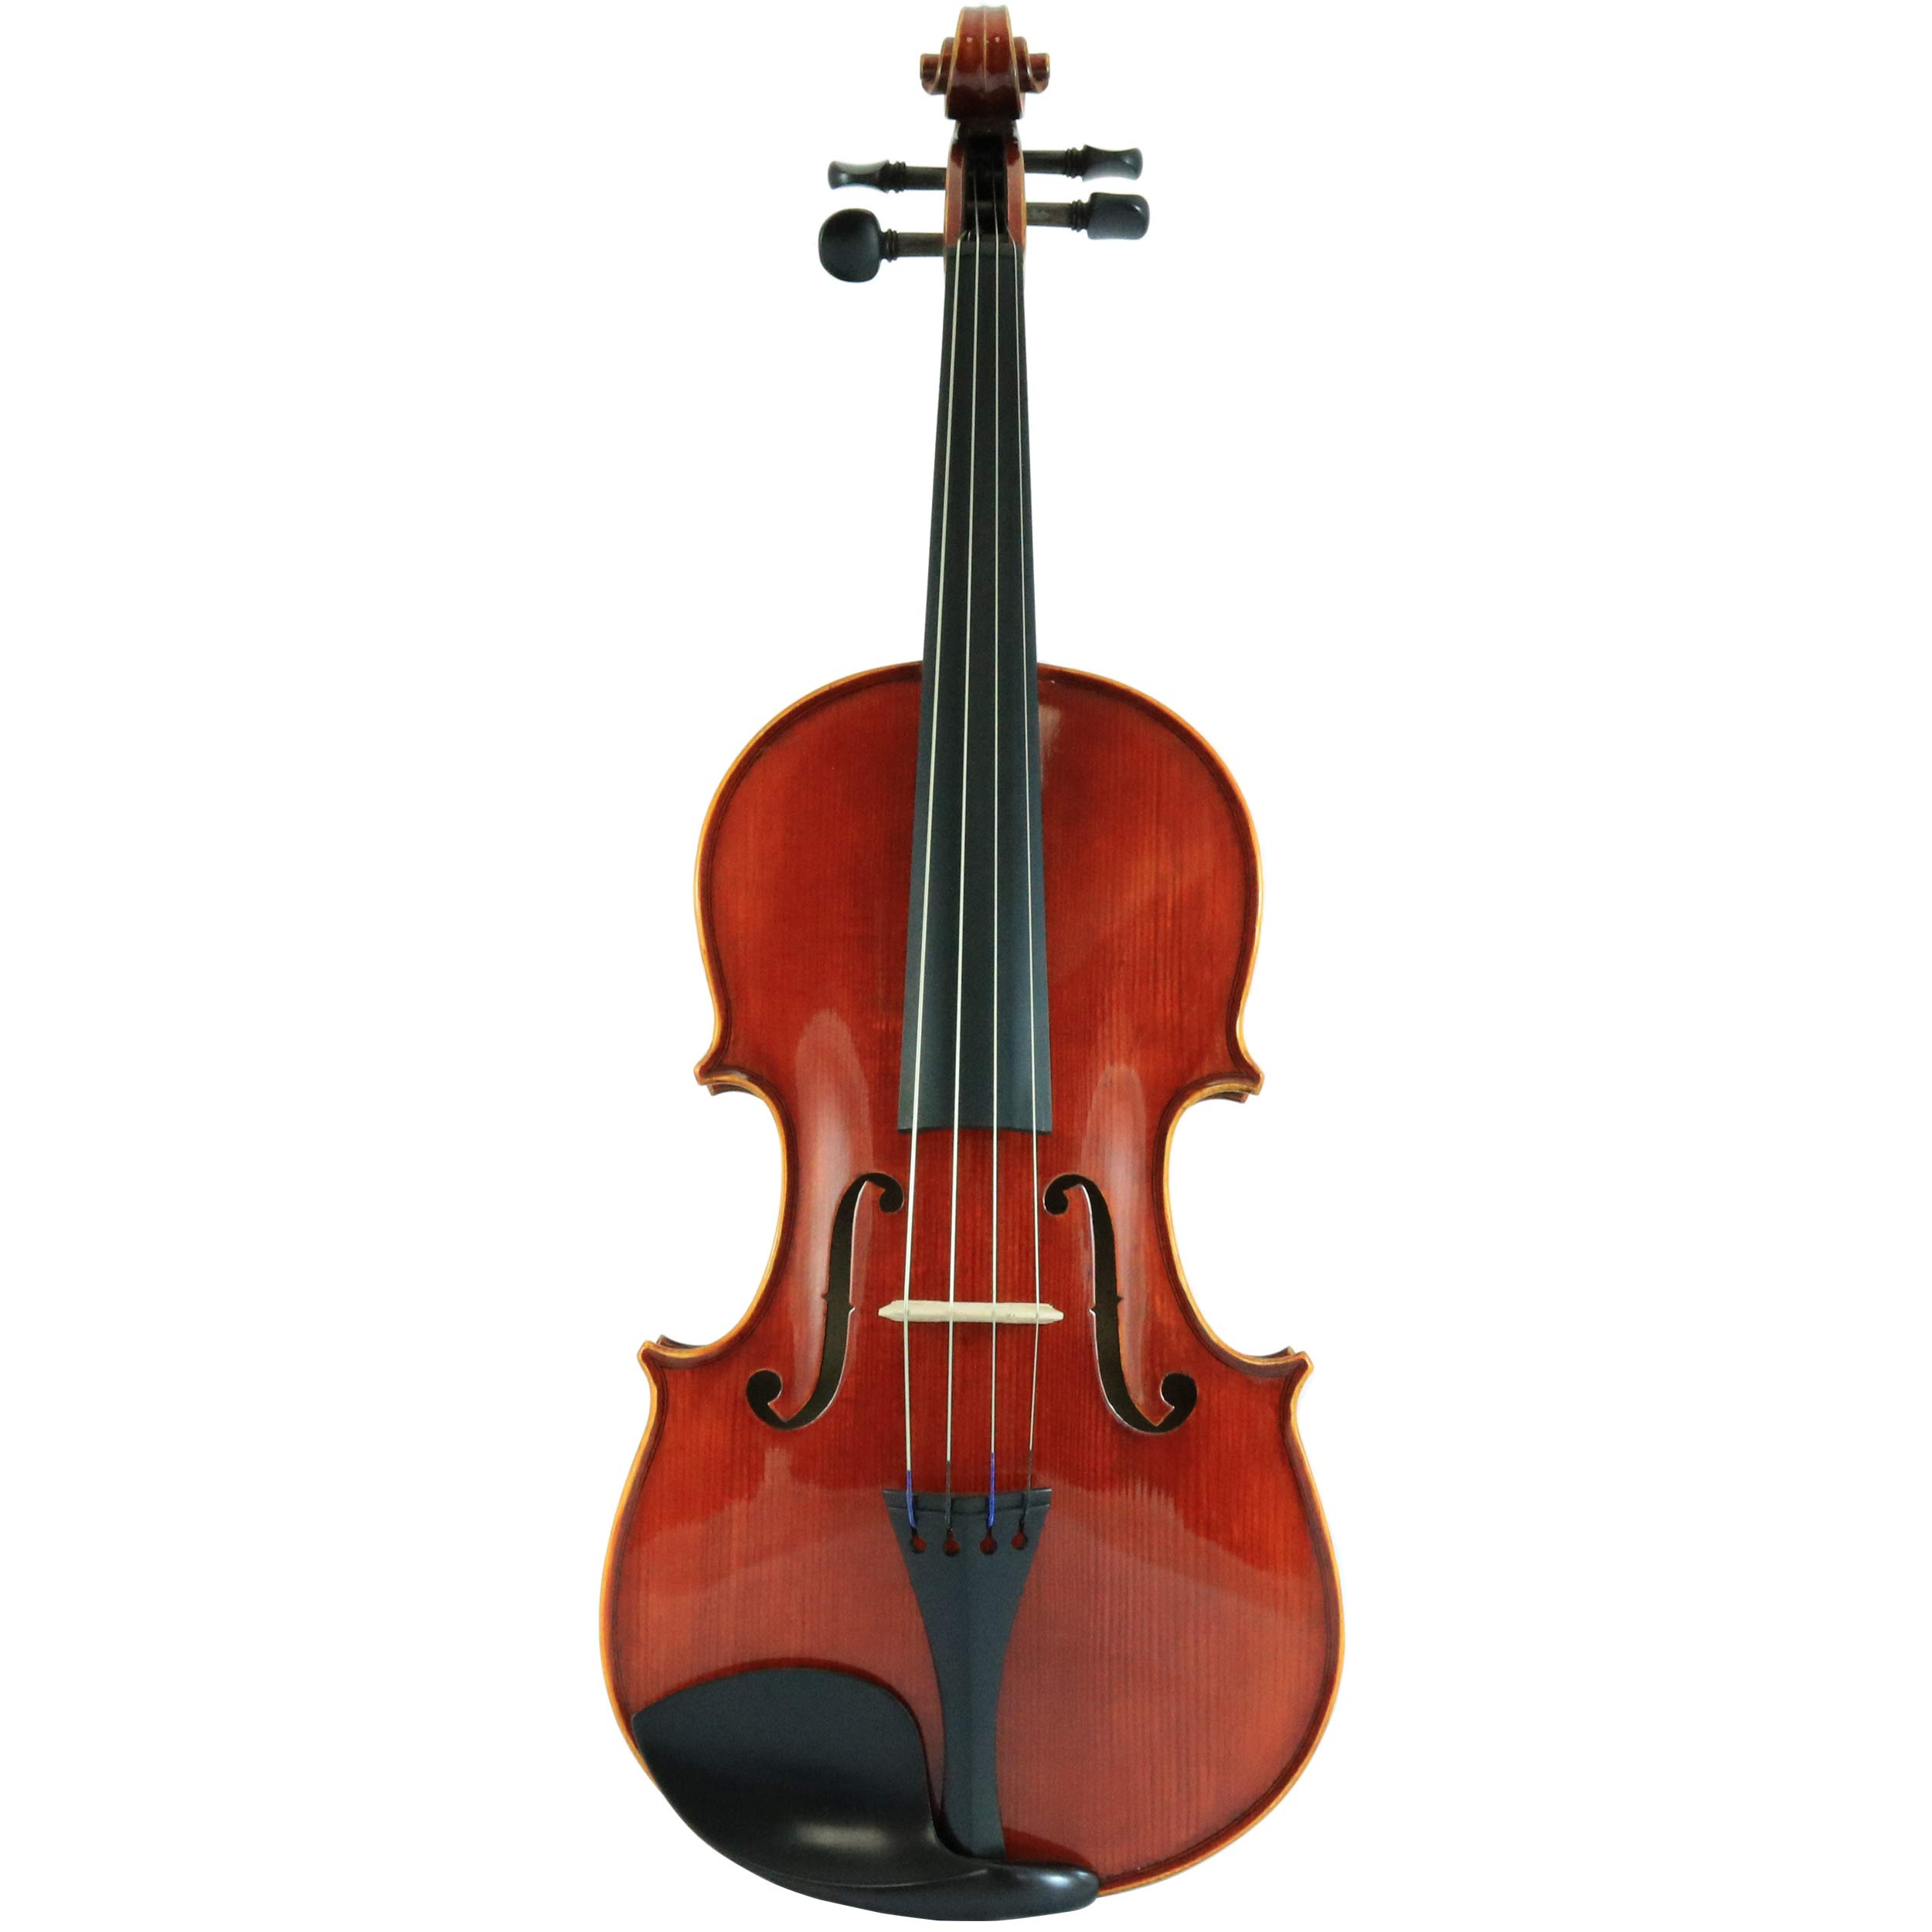 D'Luca CA400VA-15 15-Inch Orchestral Series Handmade Viola Outfit by D'Luca